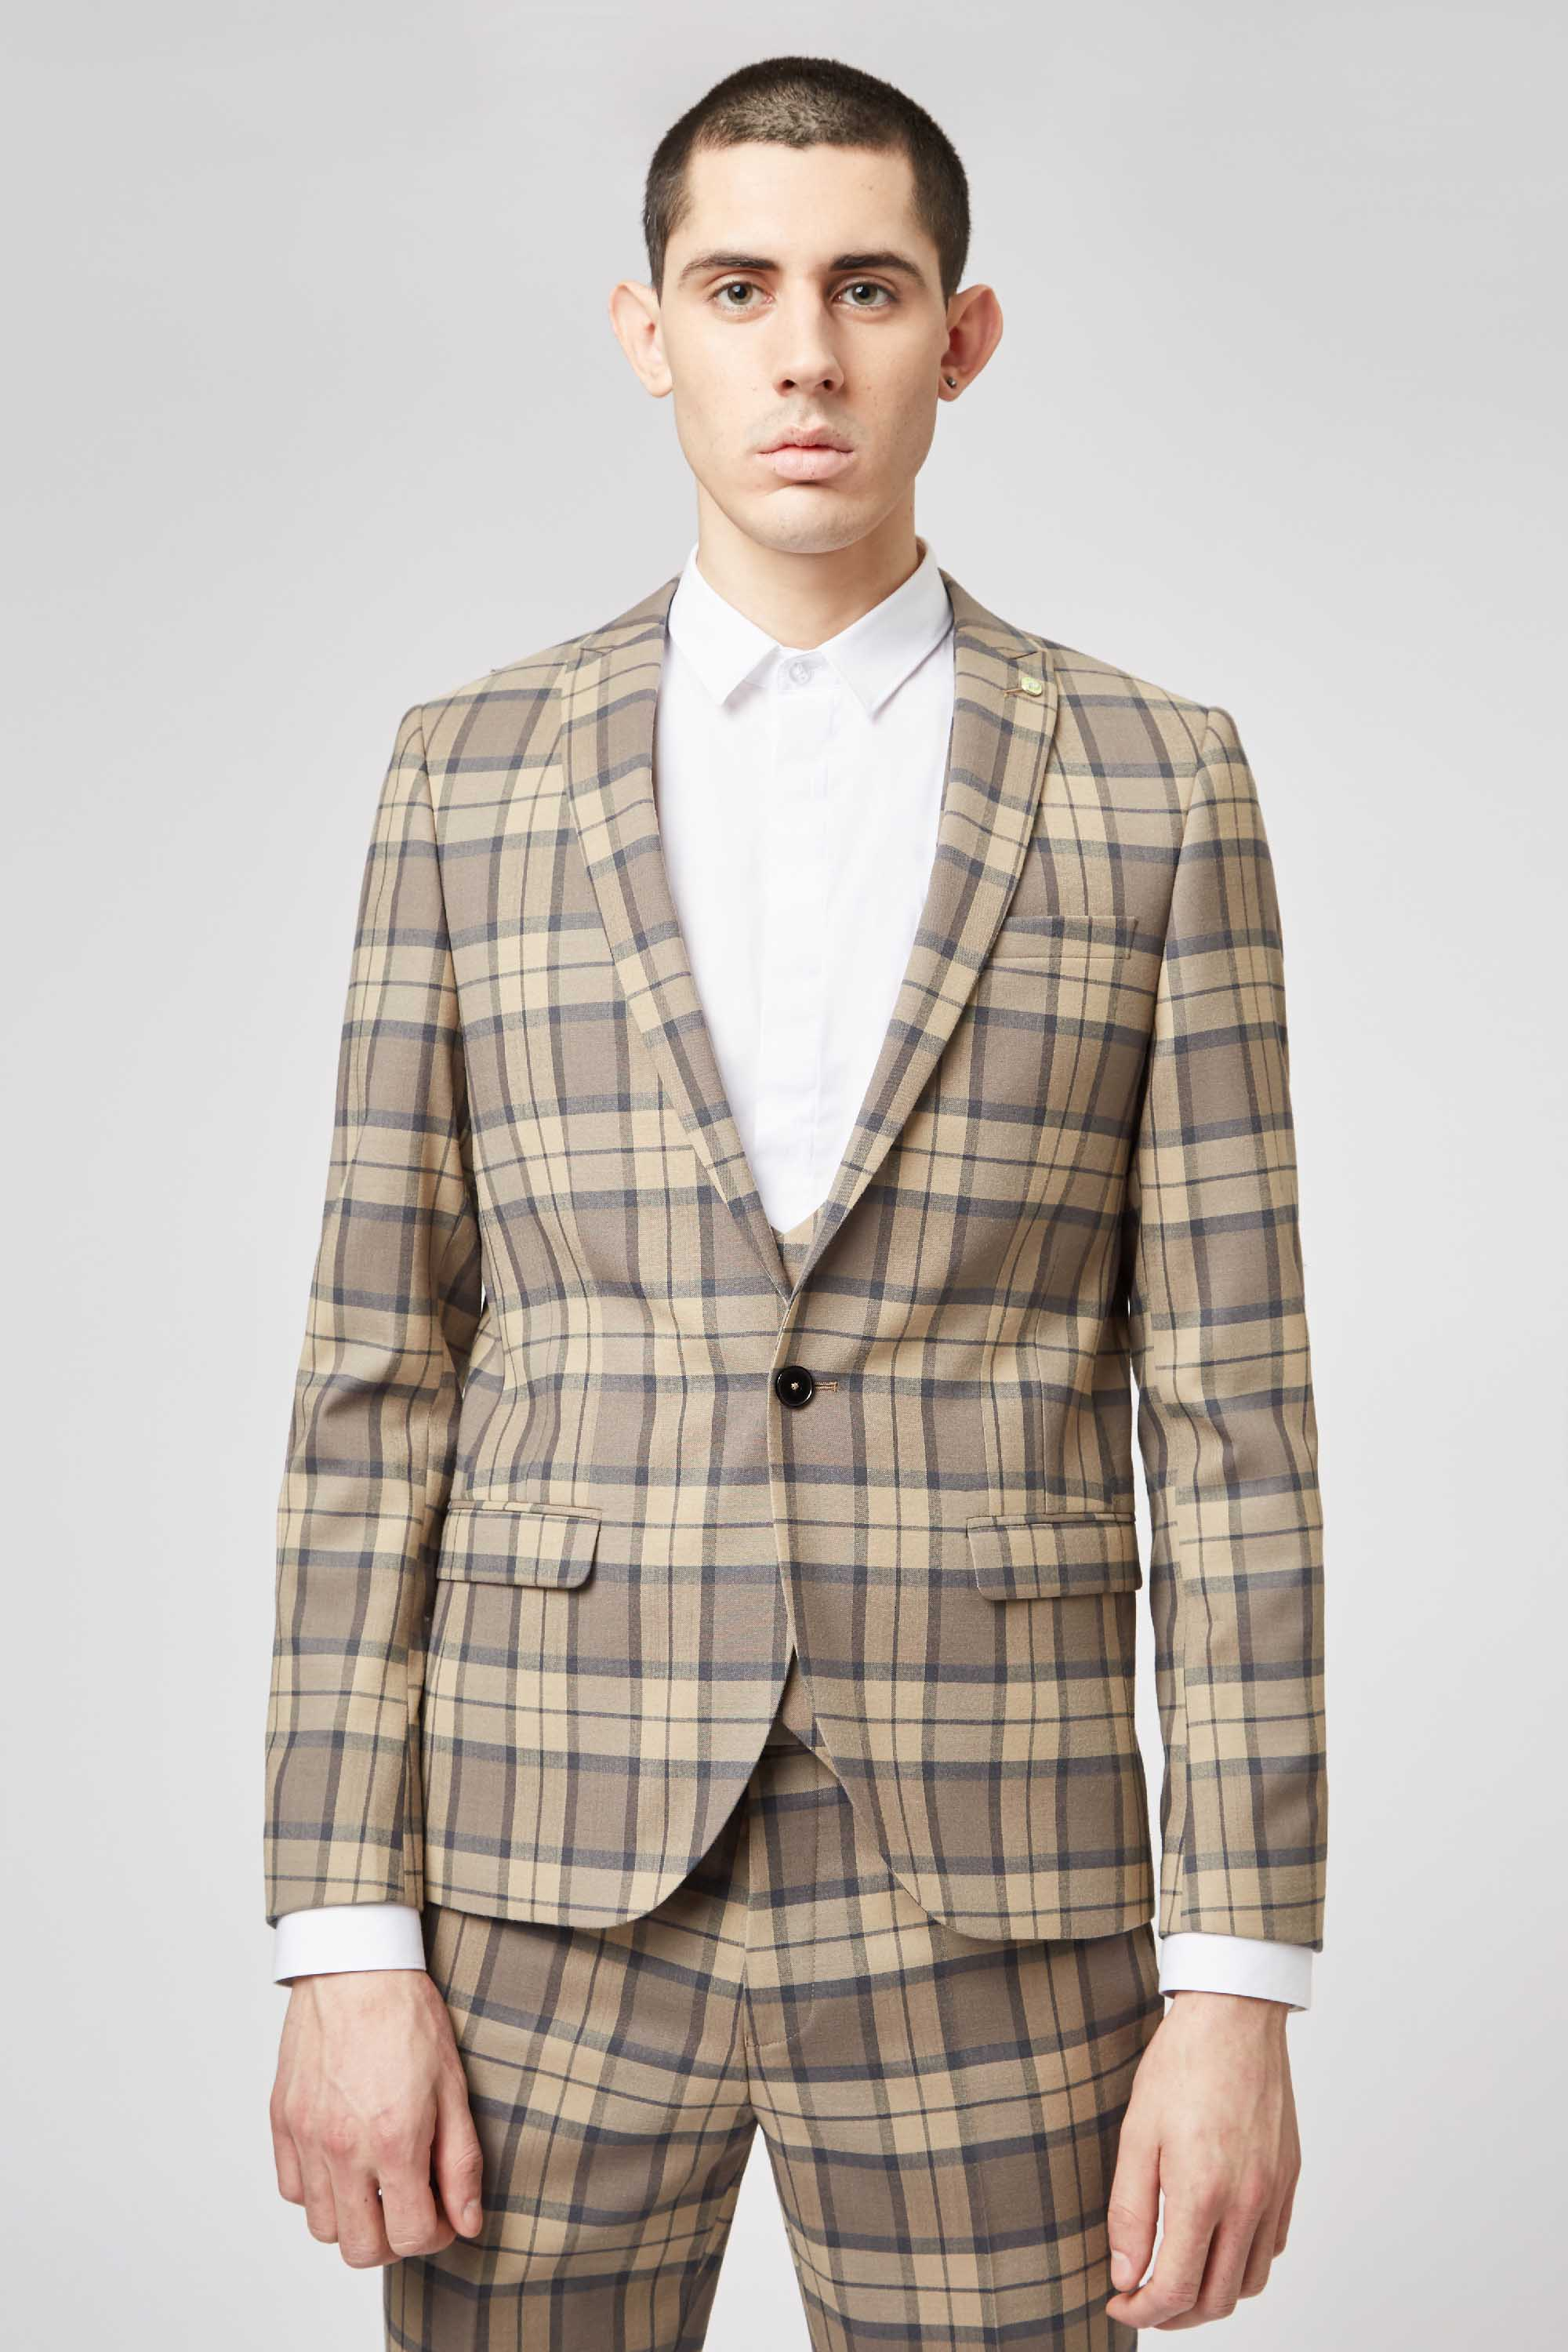 GINGER SKINNY FIT TARTAN JACKET IN TAN